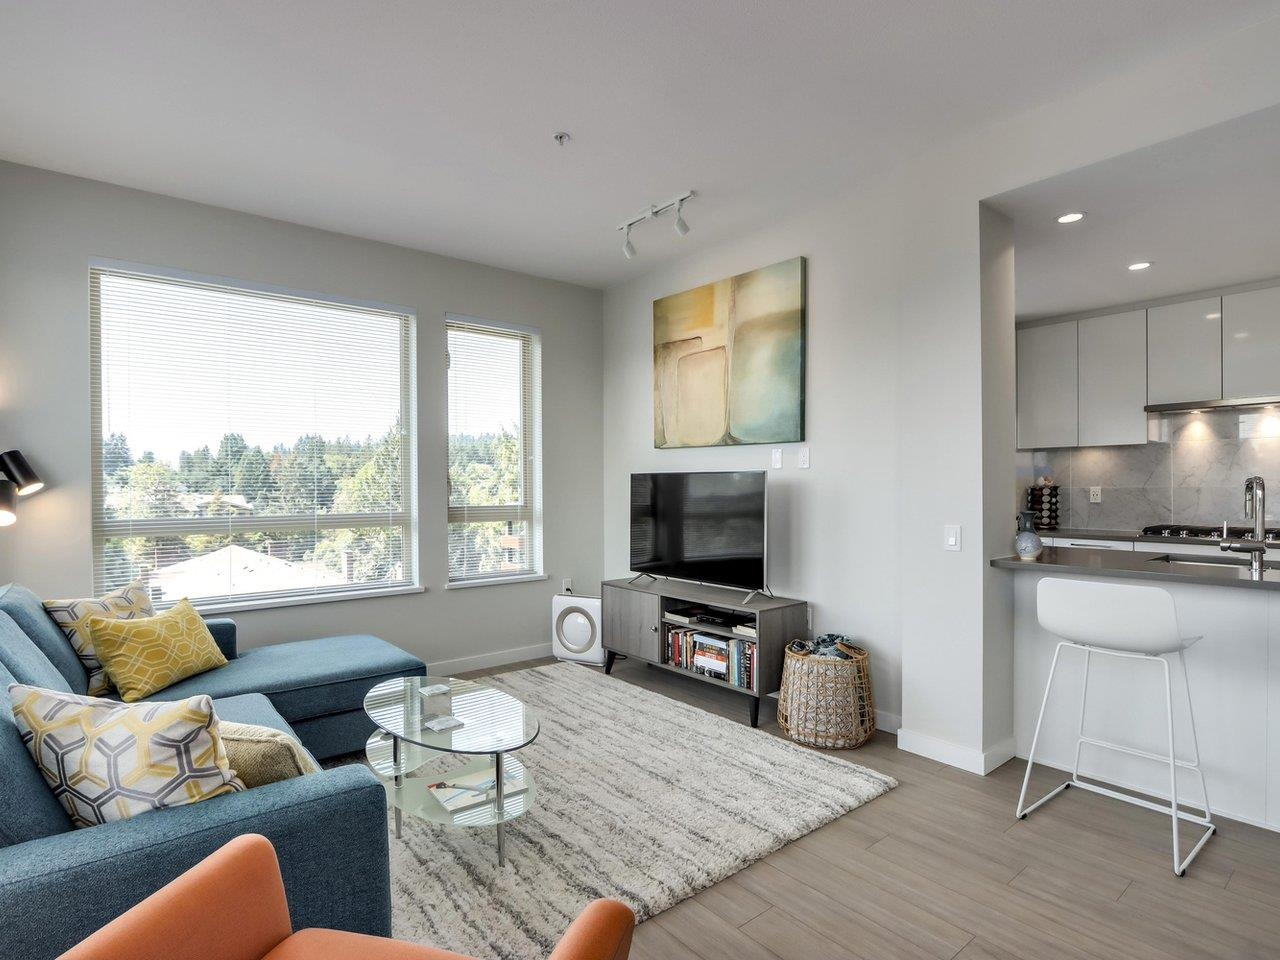 Listing image of 506 2663 LIBRARY LANE